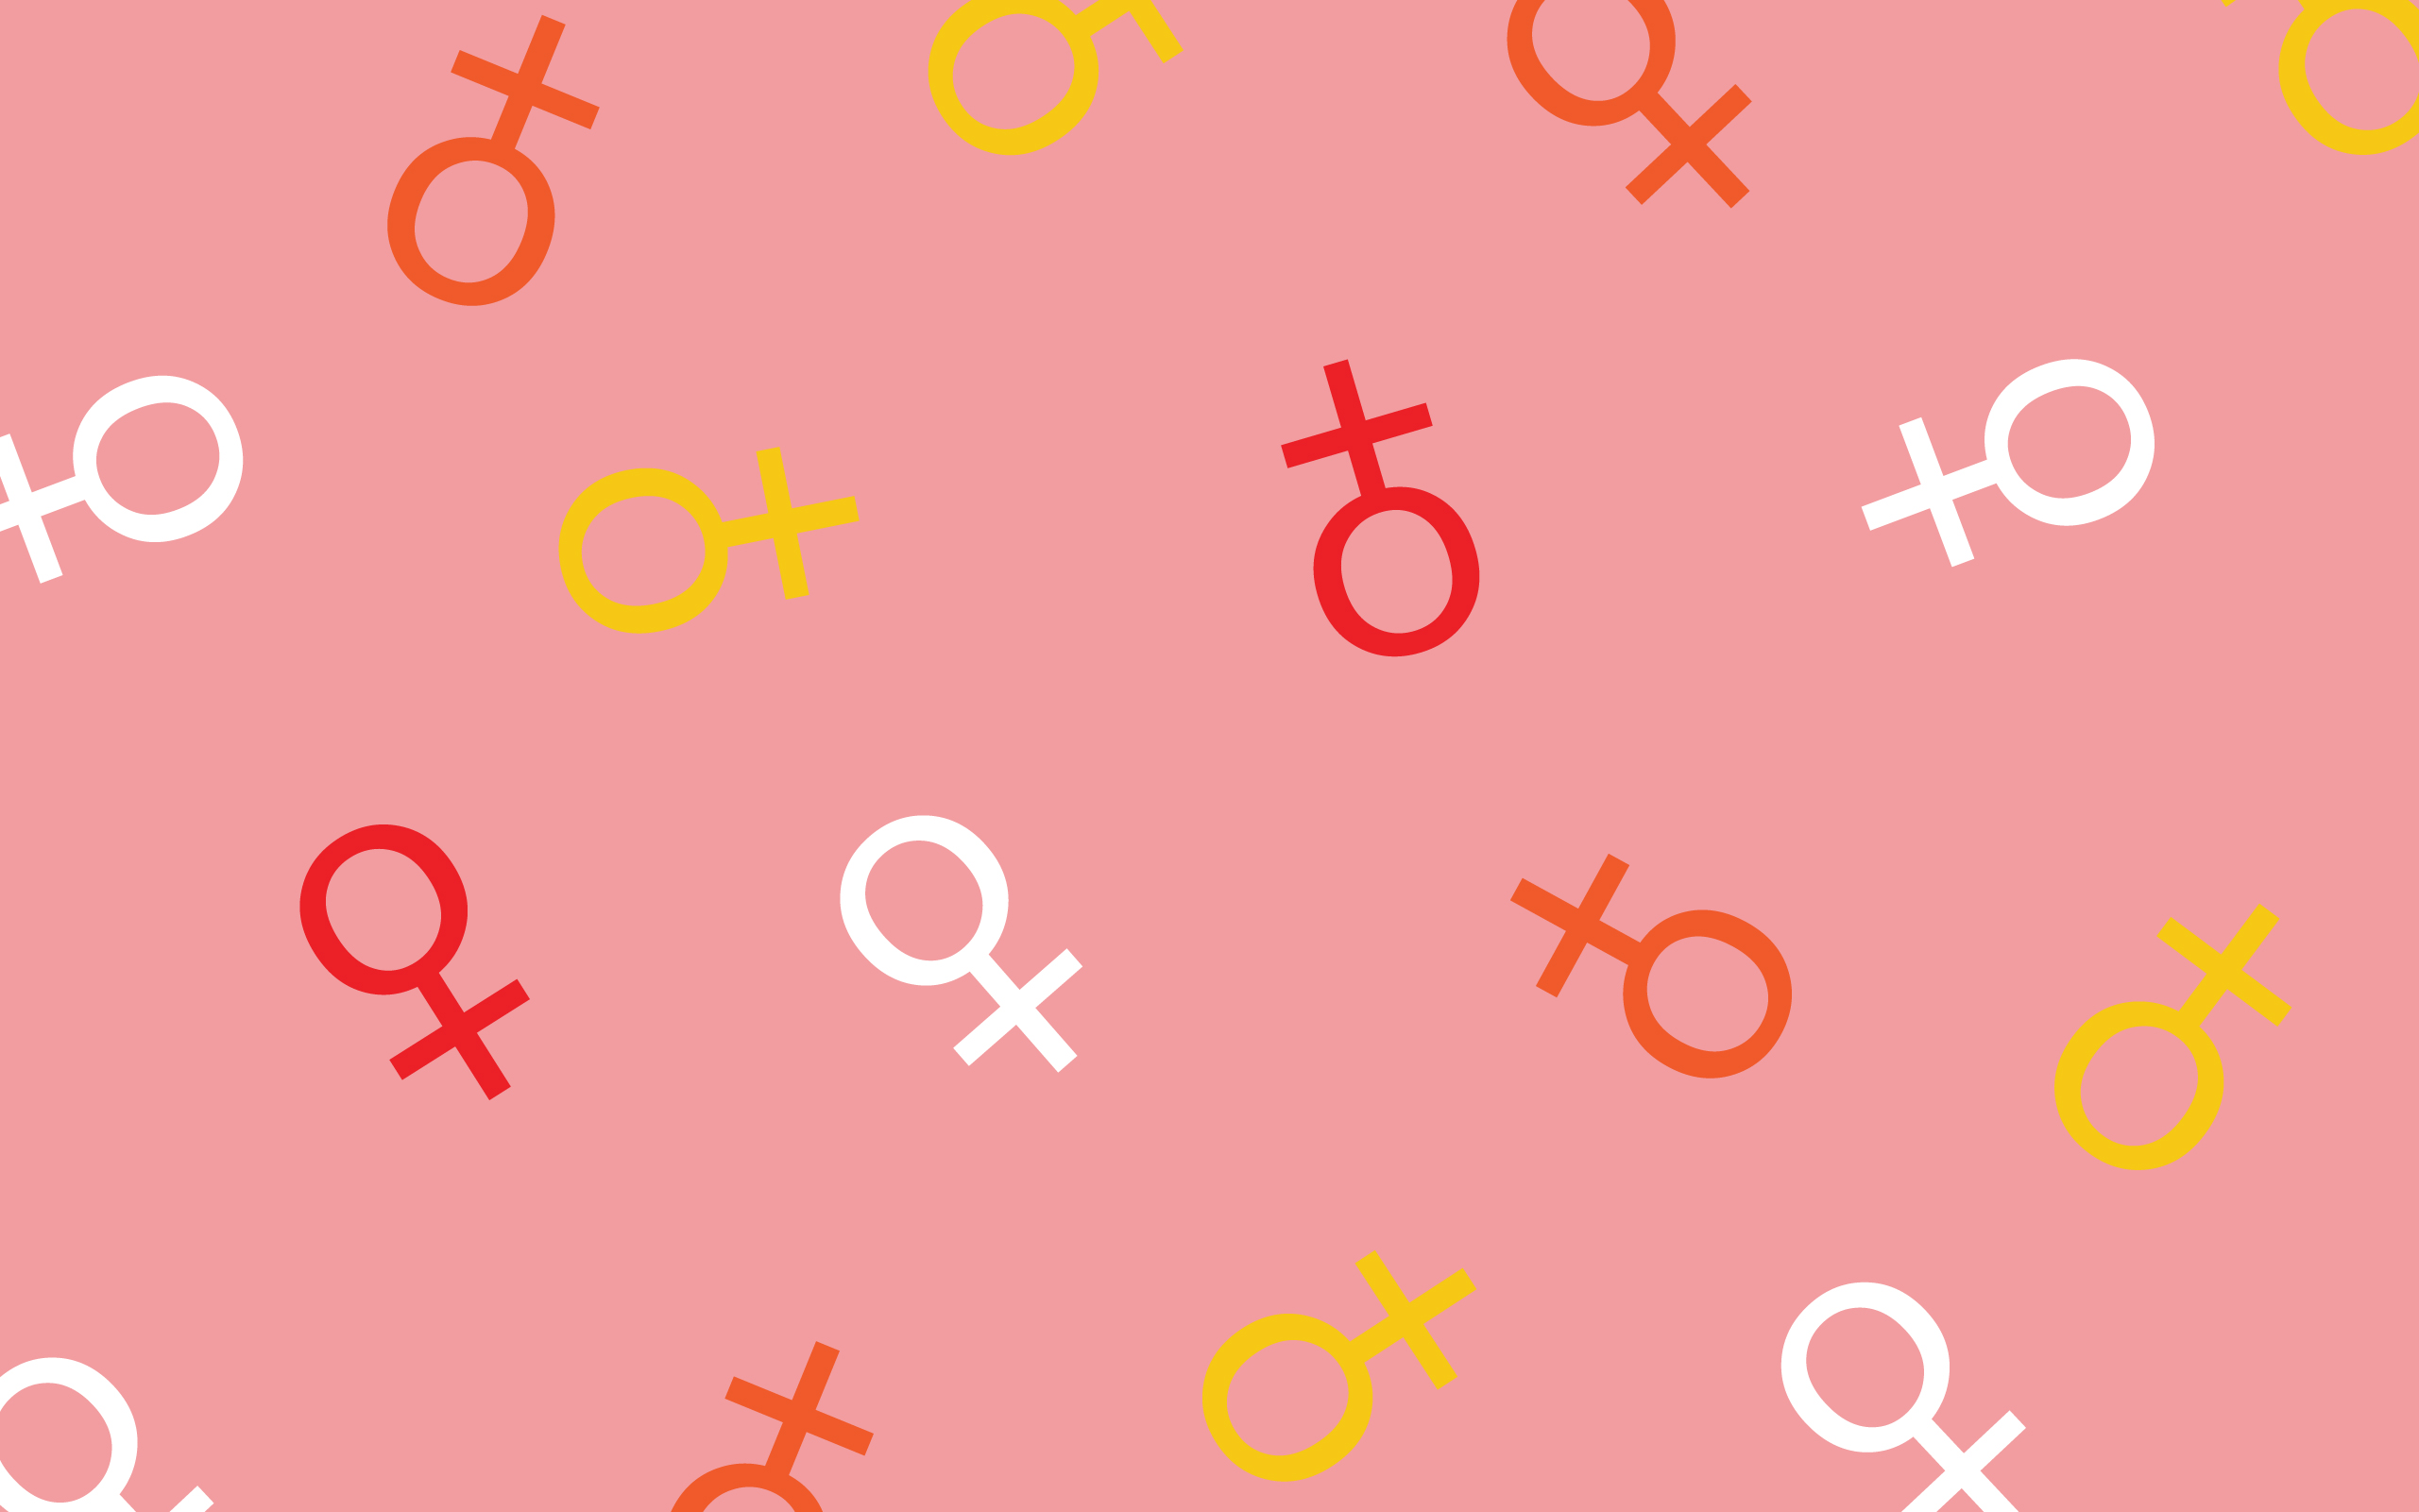 Feminist wallpaper Ideas Can Brighten Up Any Boring Computer Monitor